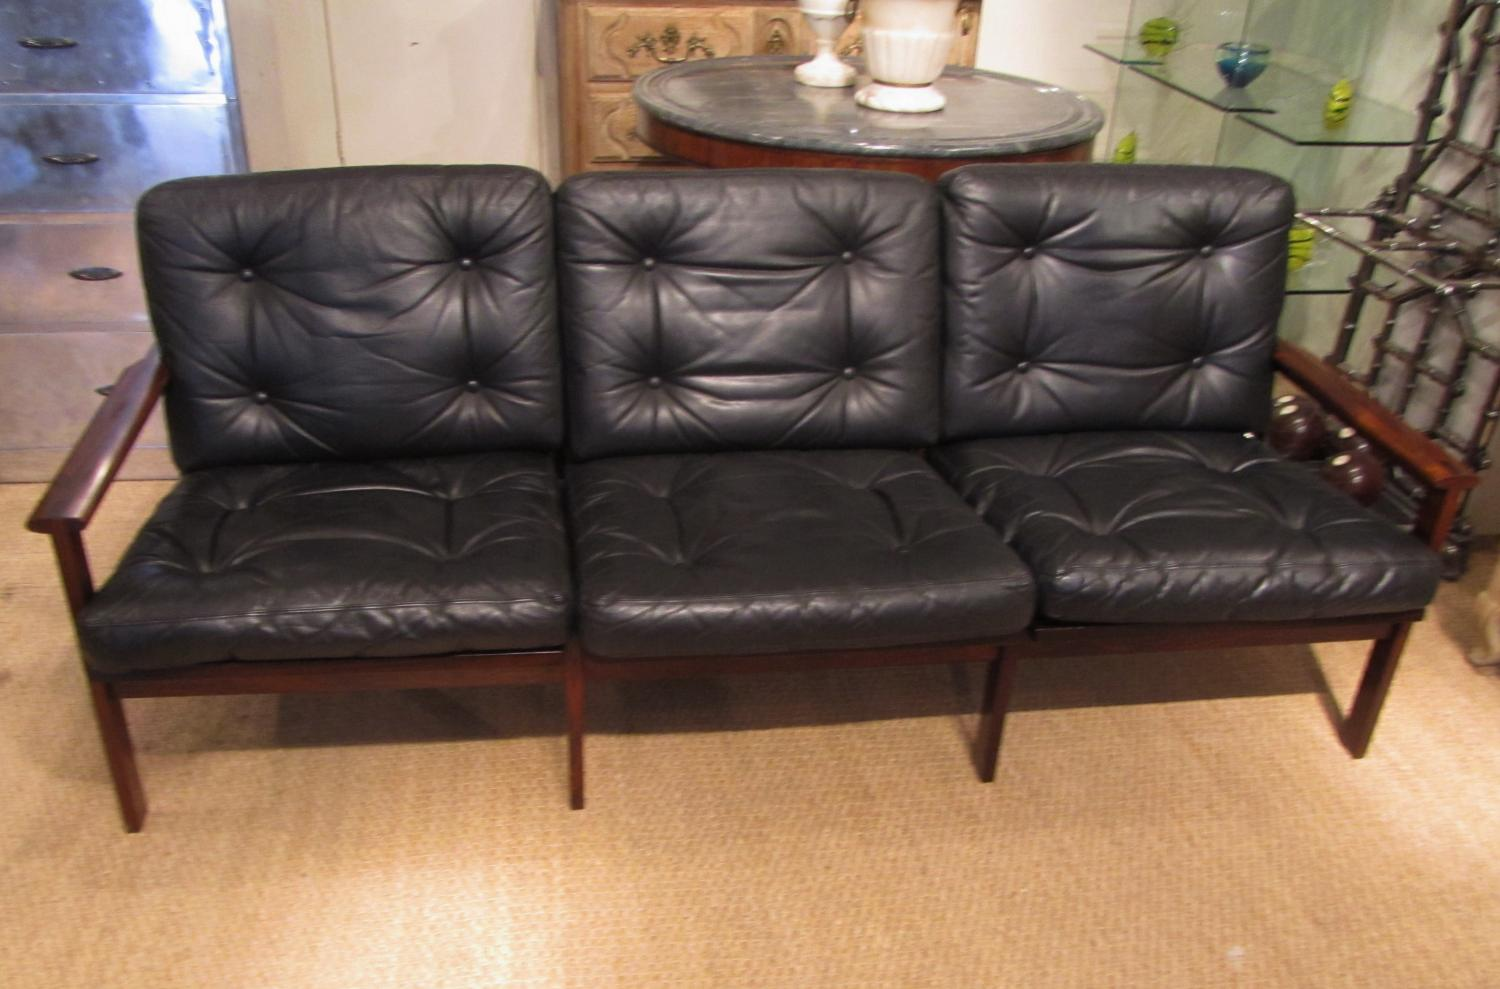 A three seater leather sofa